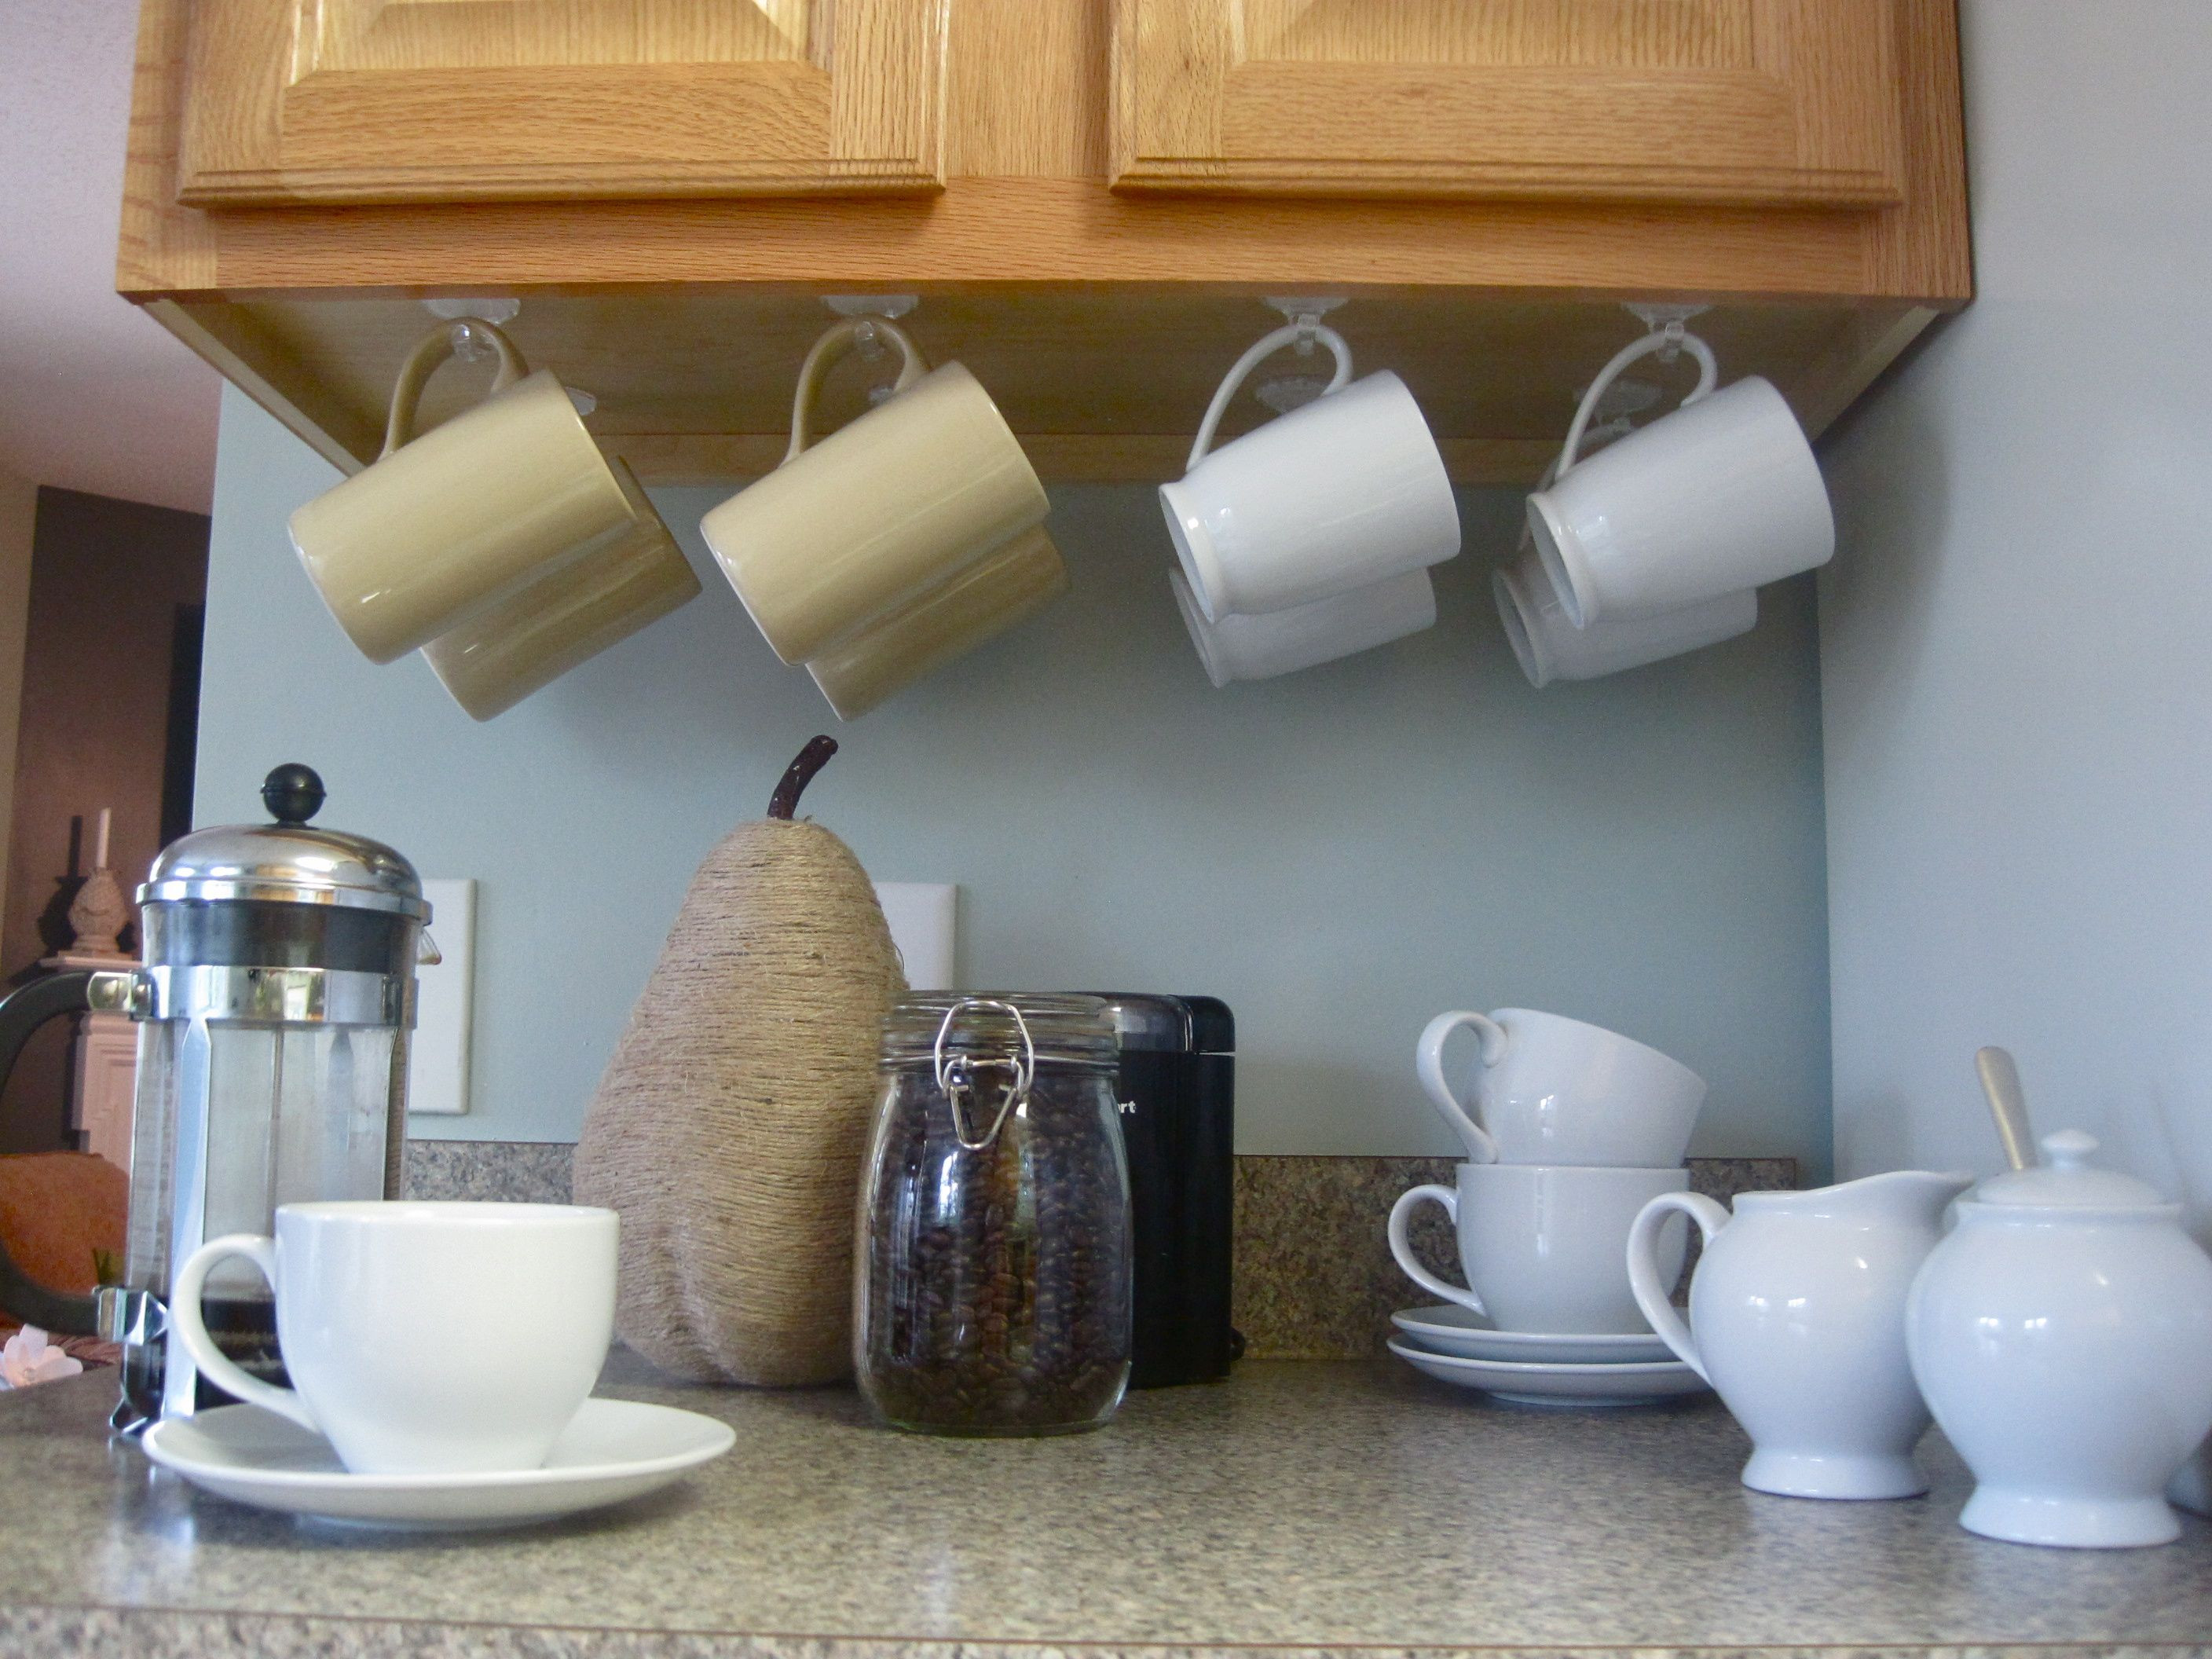 Mug Storage solutions Love This Idea for Under Cabinet Storage Home